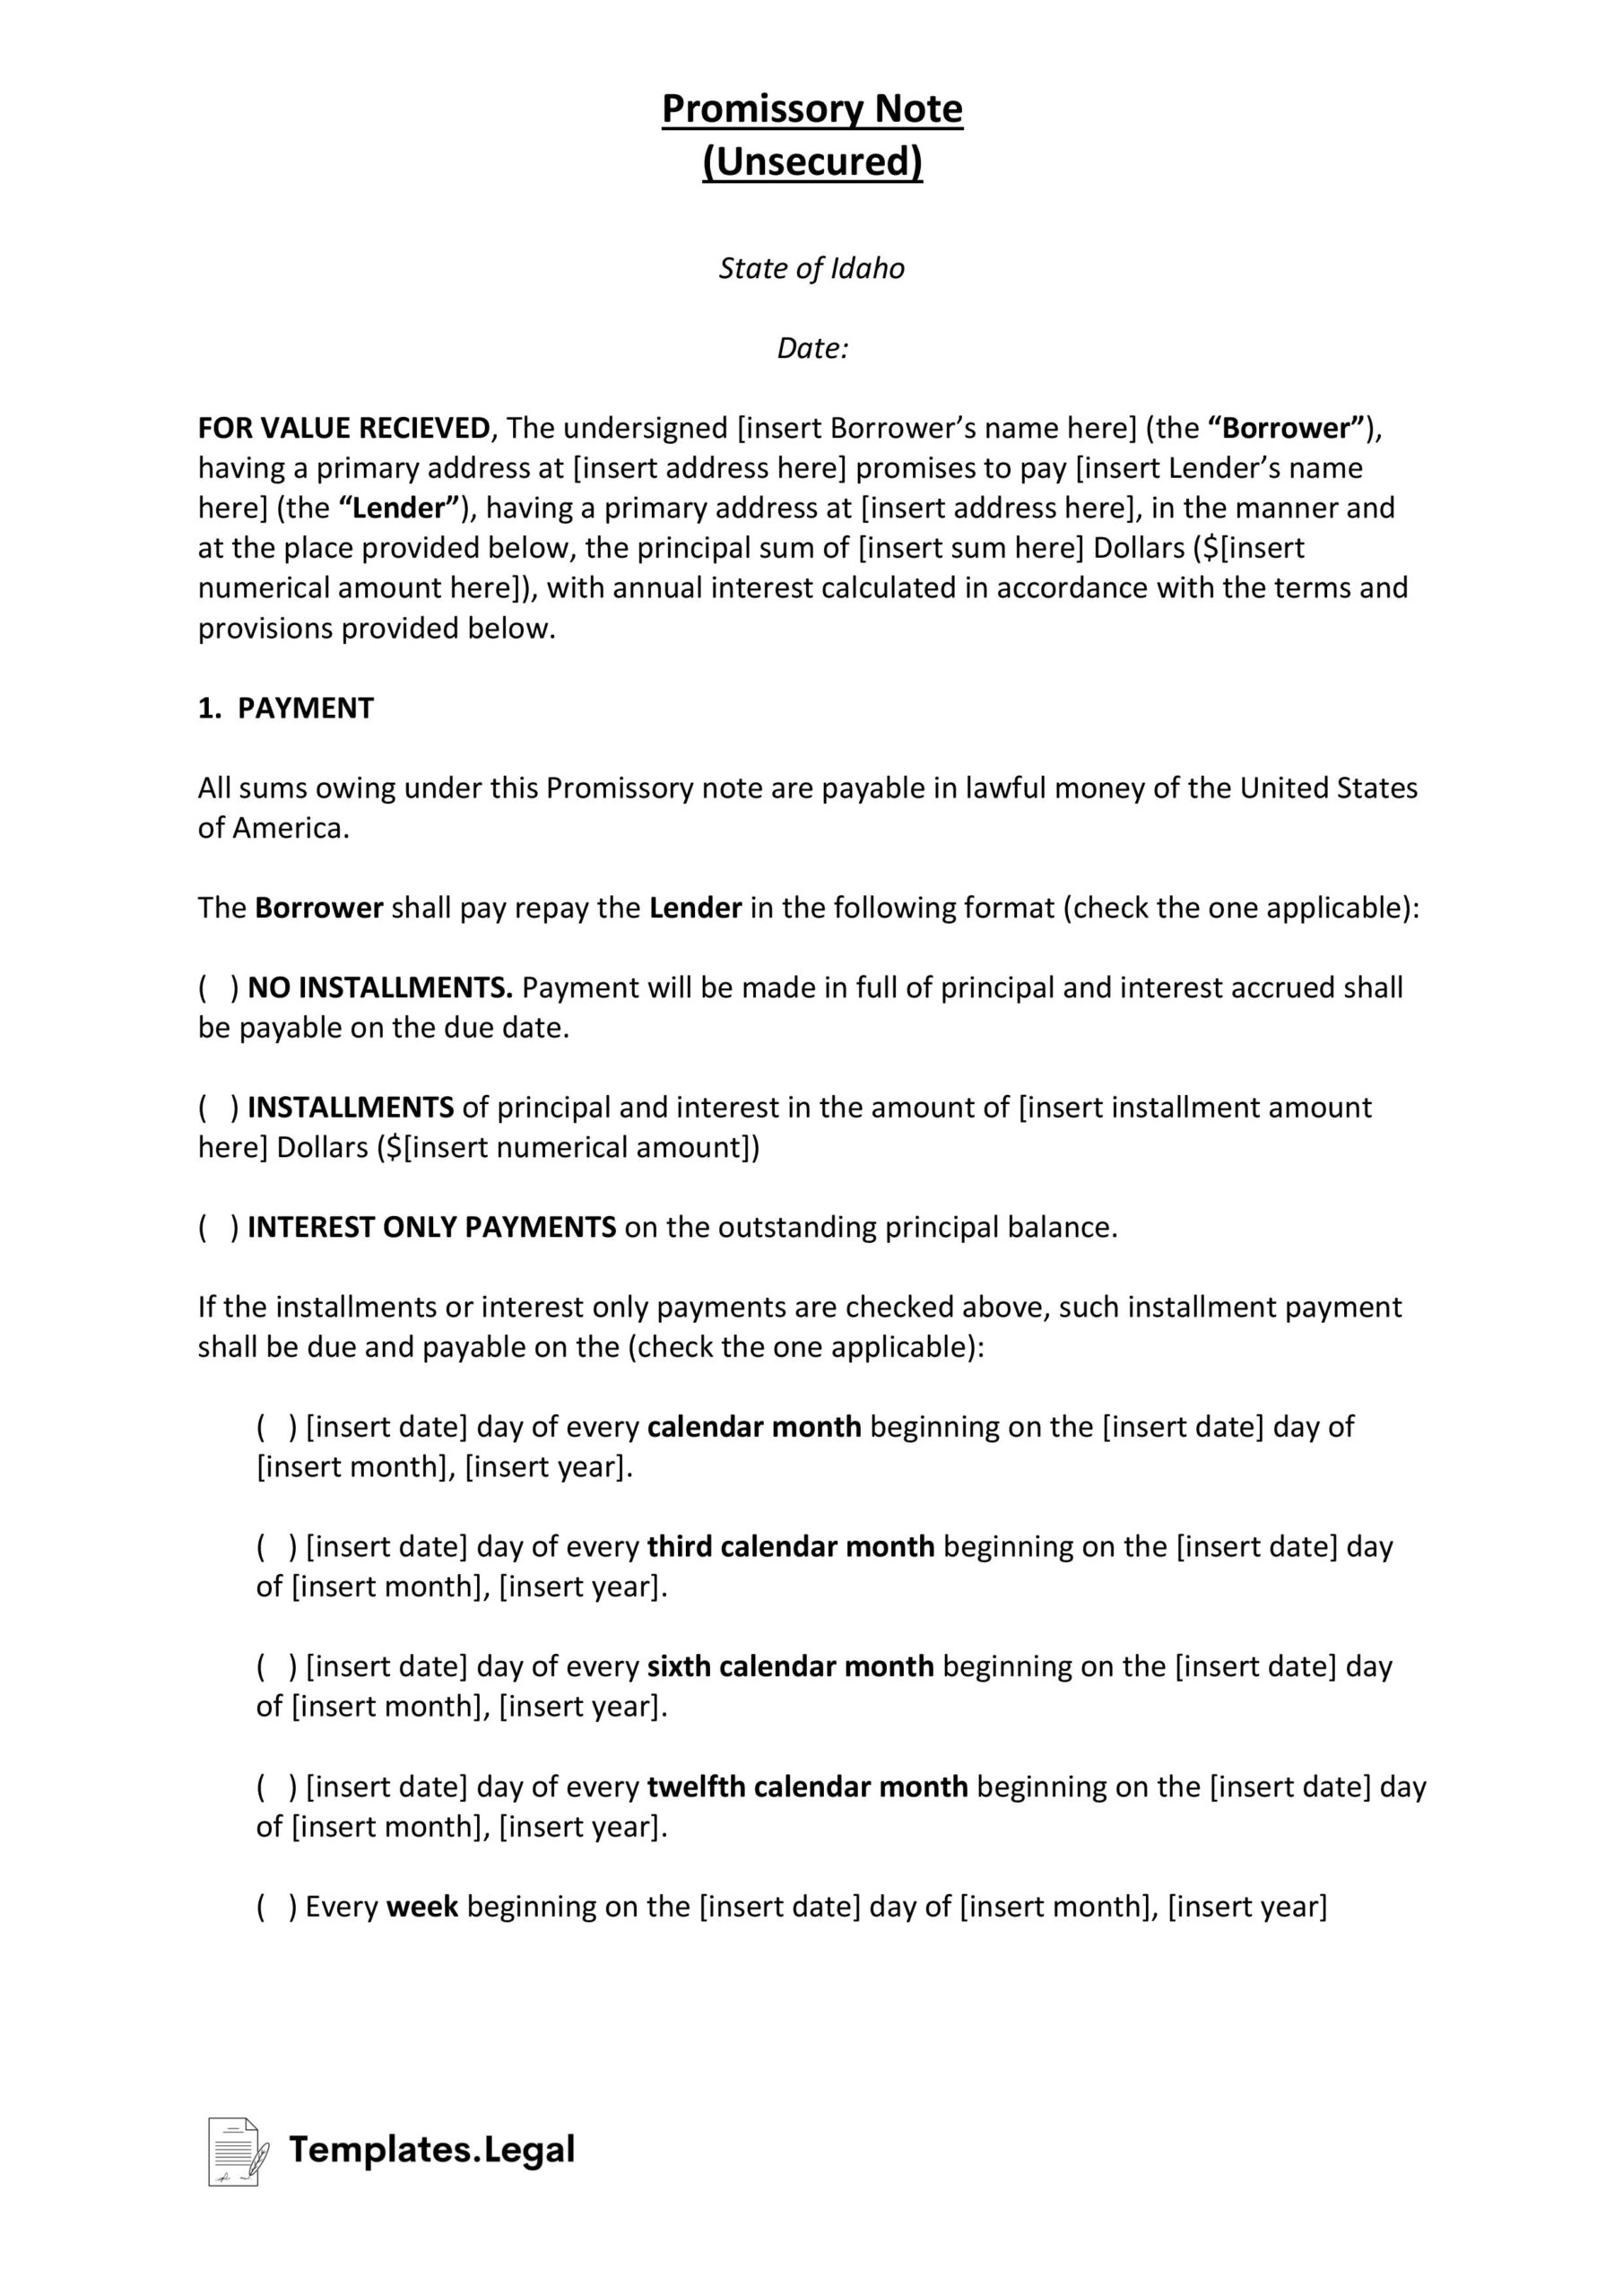 Idaho Unsecured Promissory Note - Templates.Legal